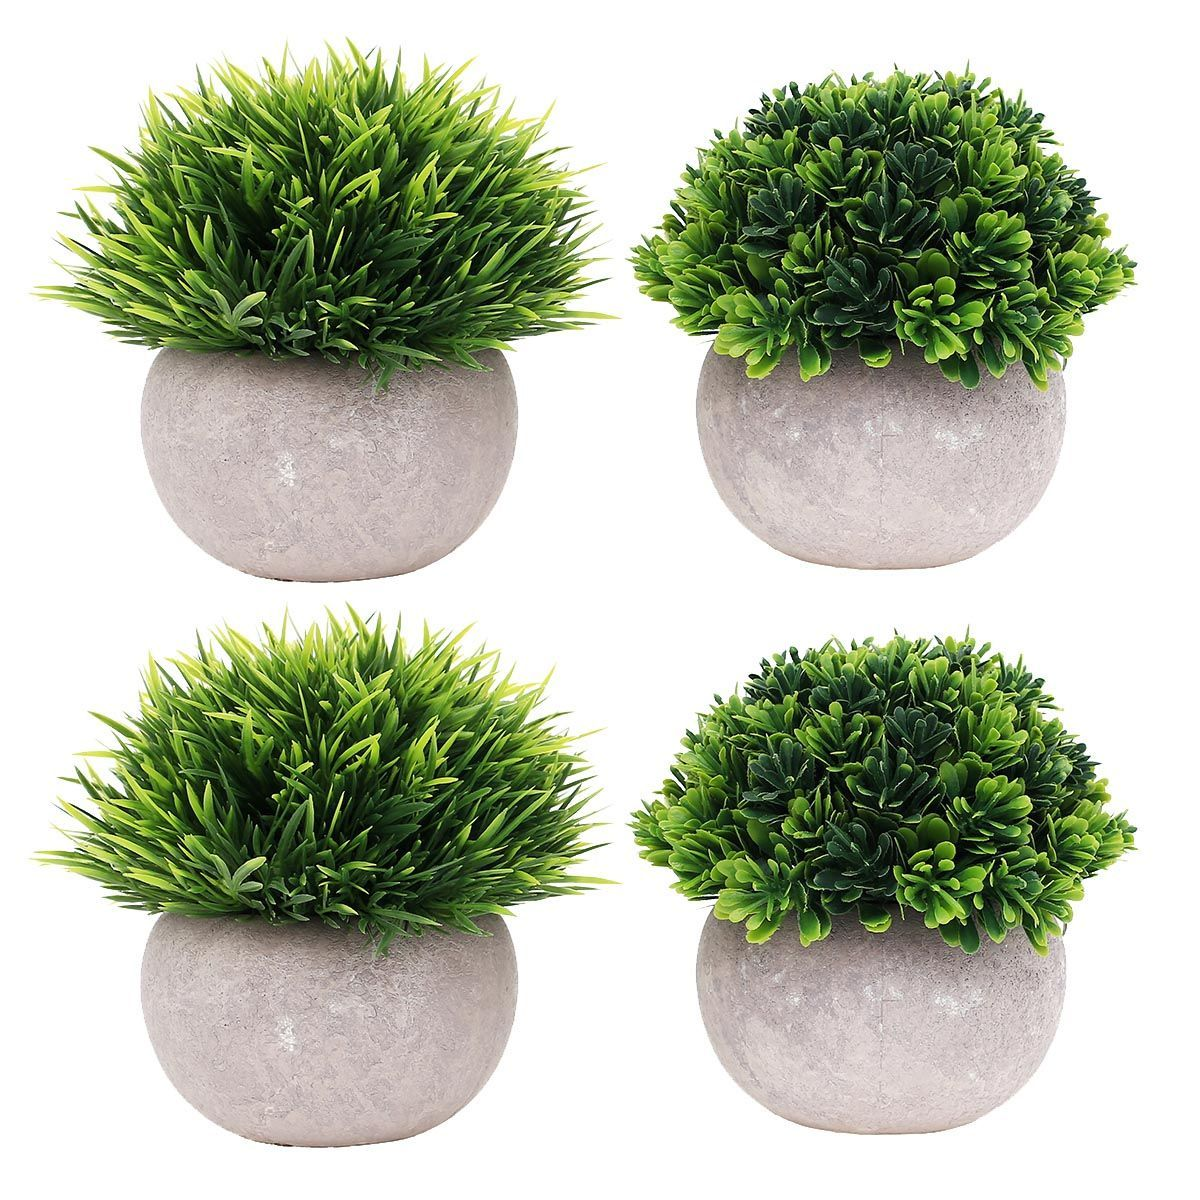 4 packs small artificial plants in pot mini faked potted